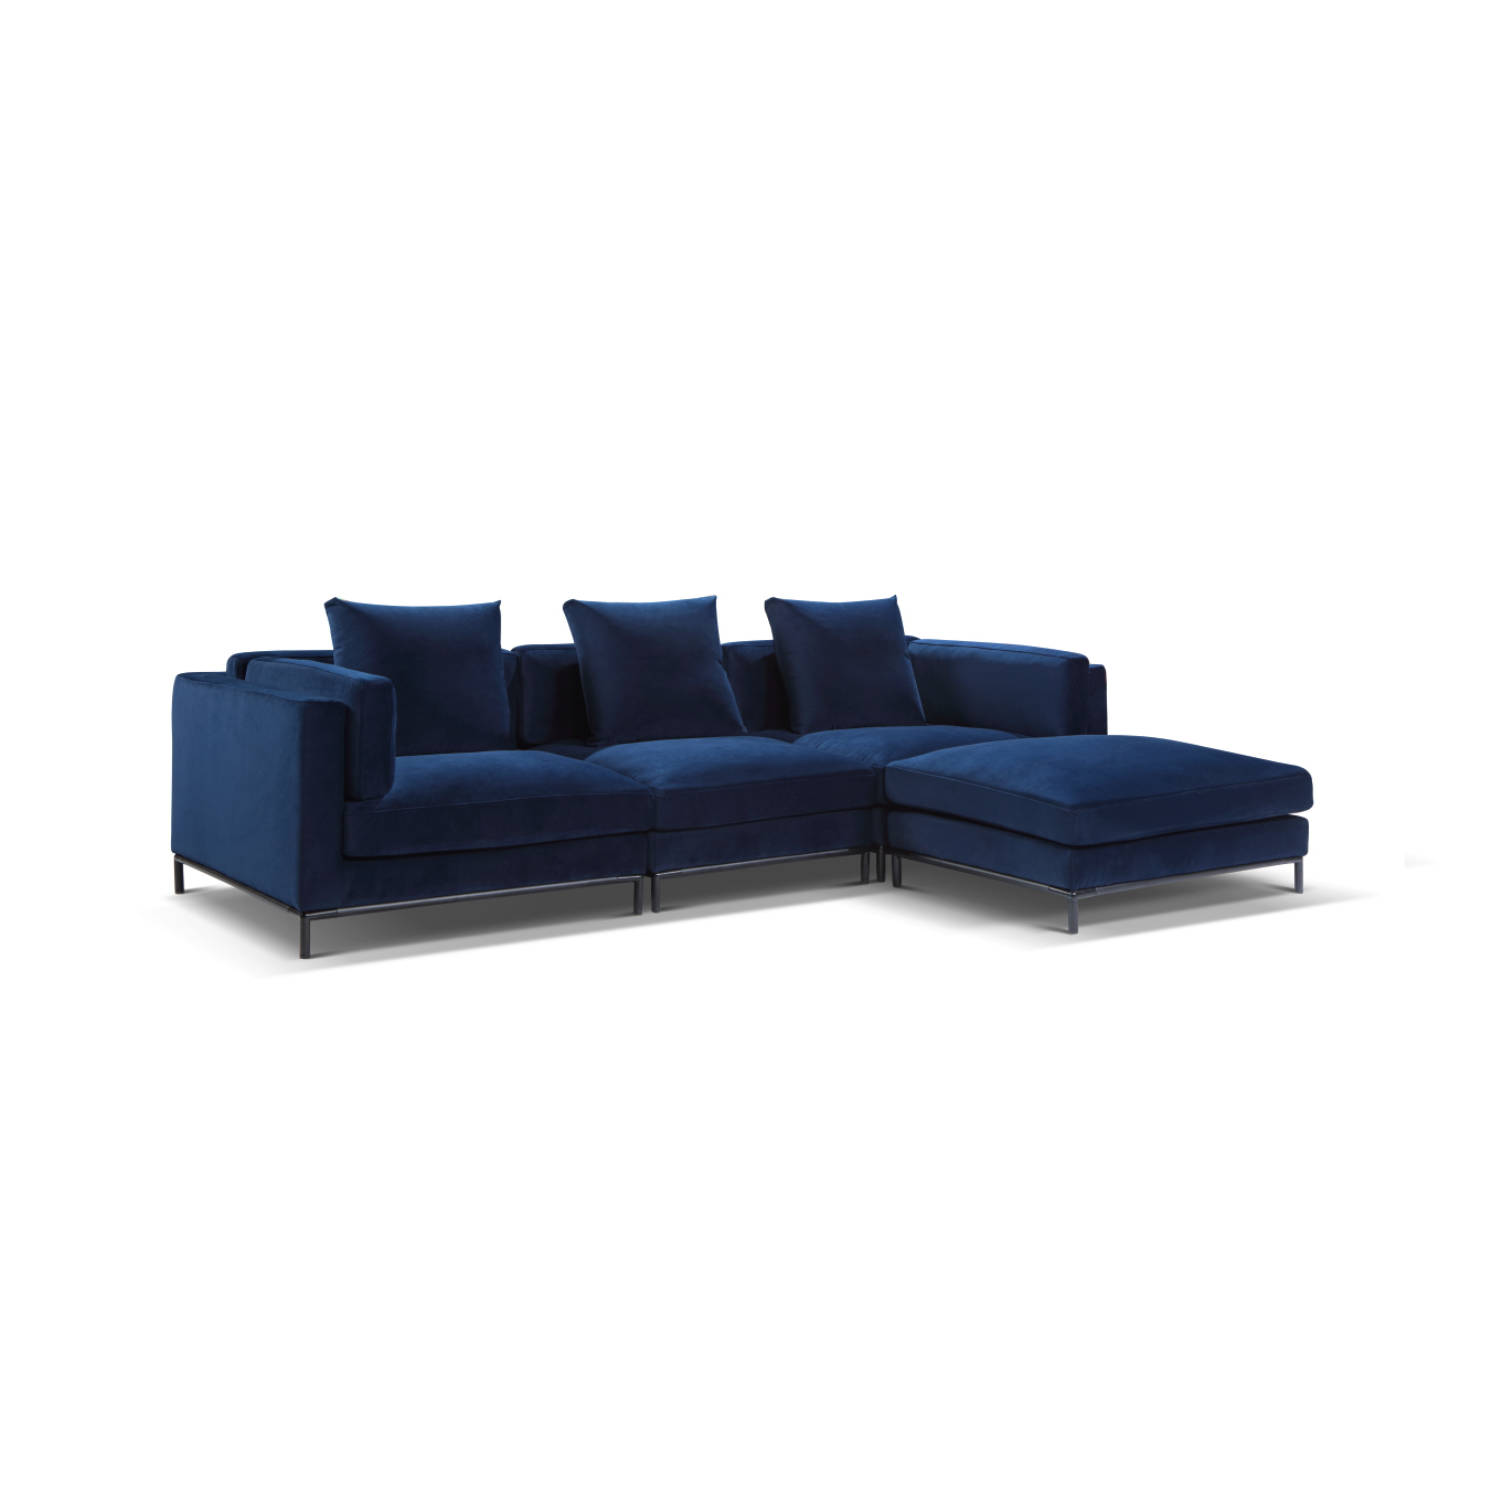 Migliore Sectional Best Leather Or Fabric Modular Sofa Design Expand Furniture Folding Tables Smarter Wall Beds Space Savers